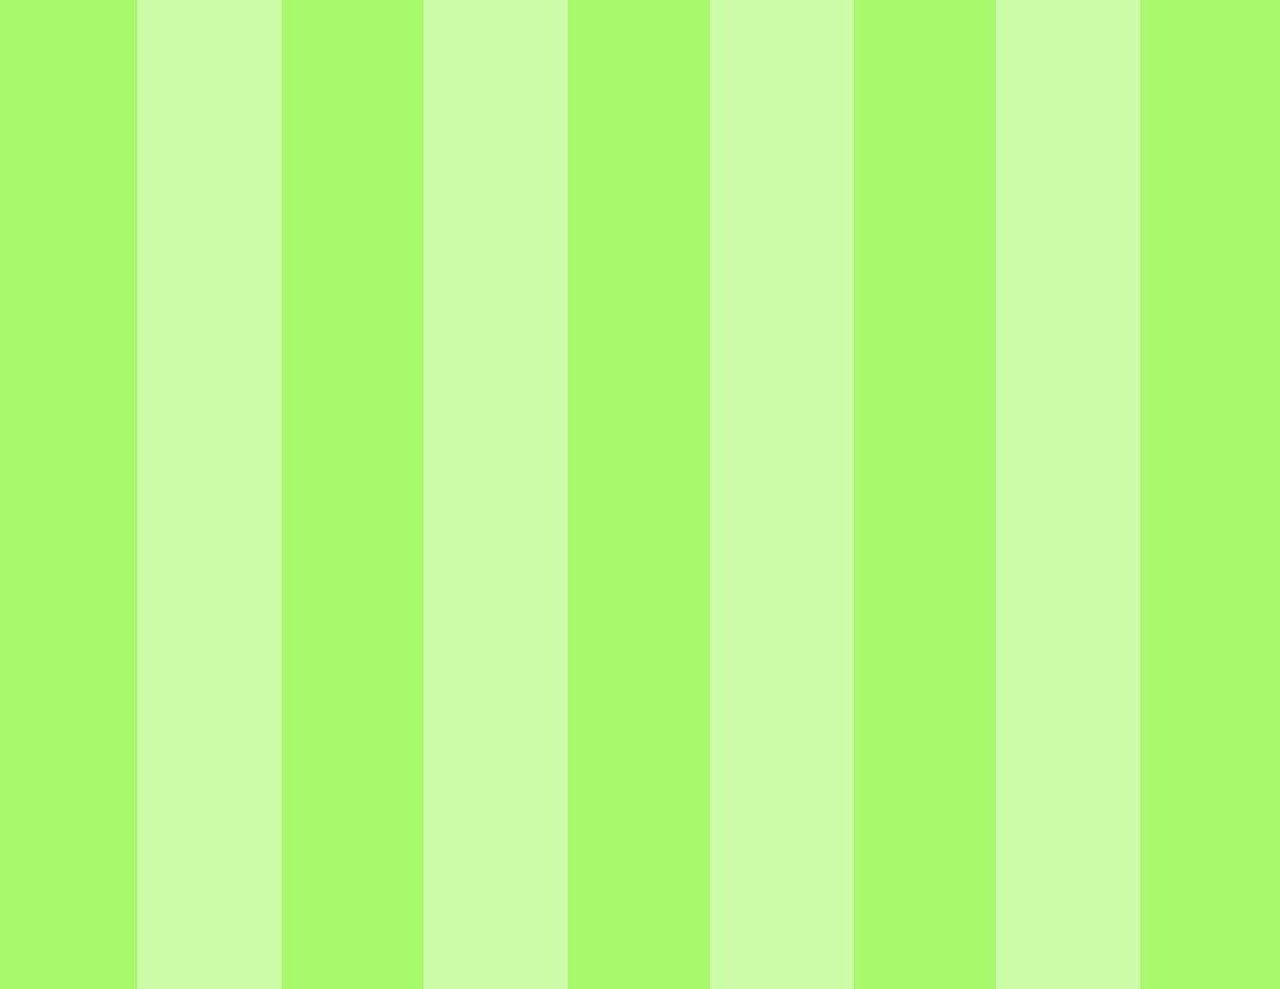 Tumblr Green Wallpapers Top Free Tumblr Green Backgrounds Wallpaperaccess